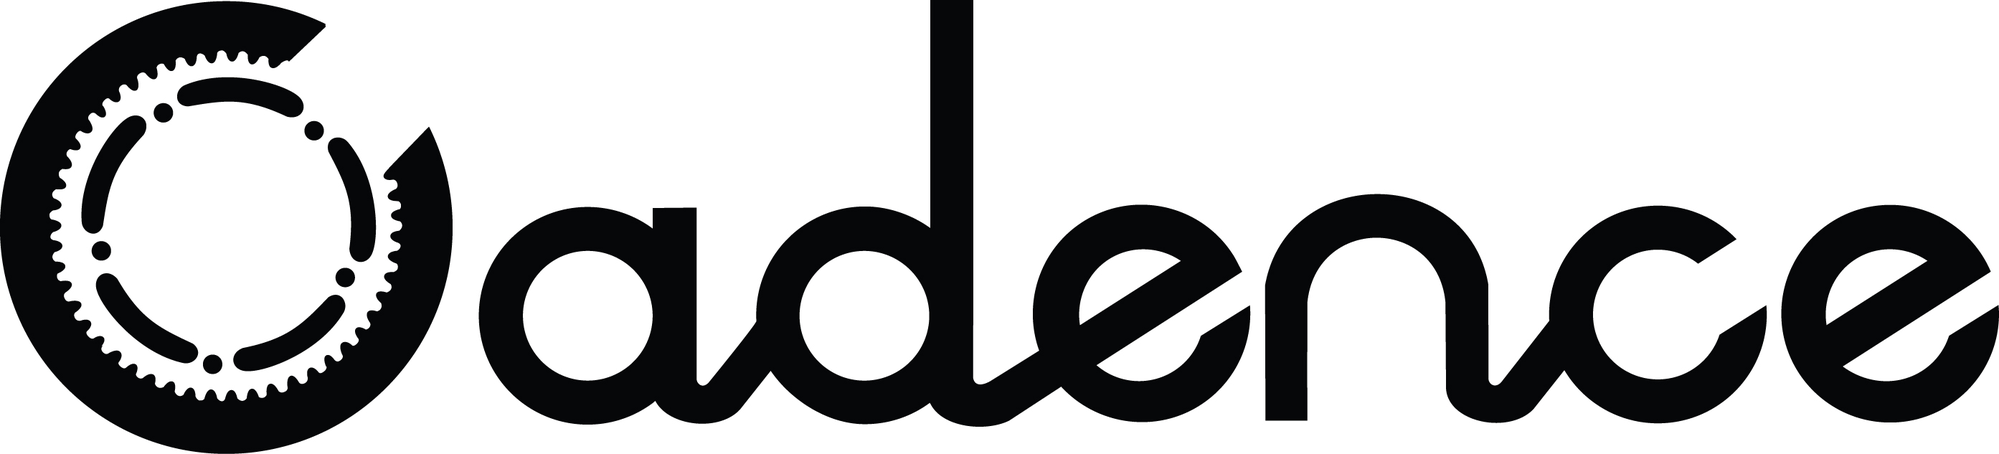 CadenceCollectionUK logo